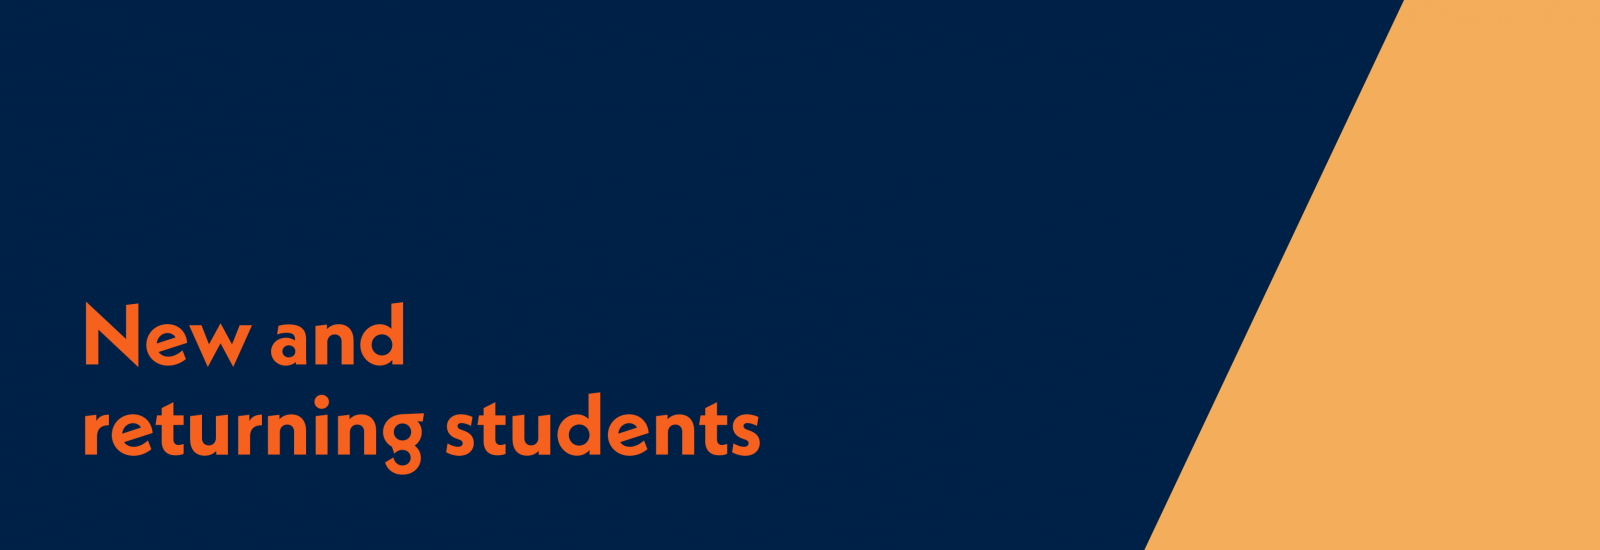 New and returning students title graphic